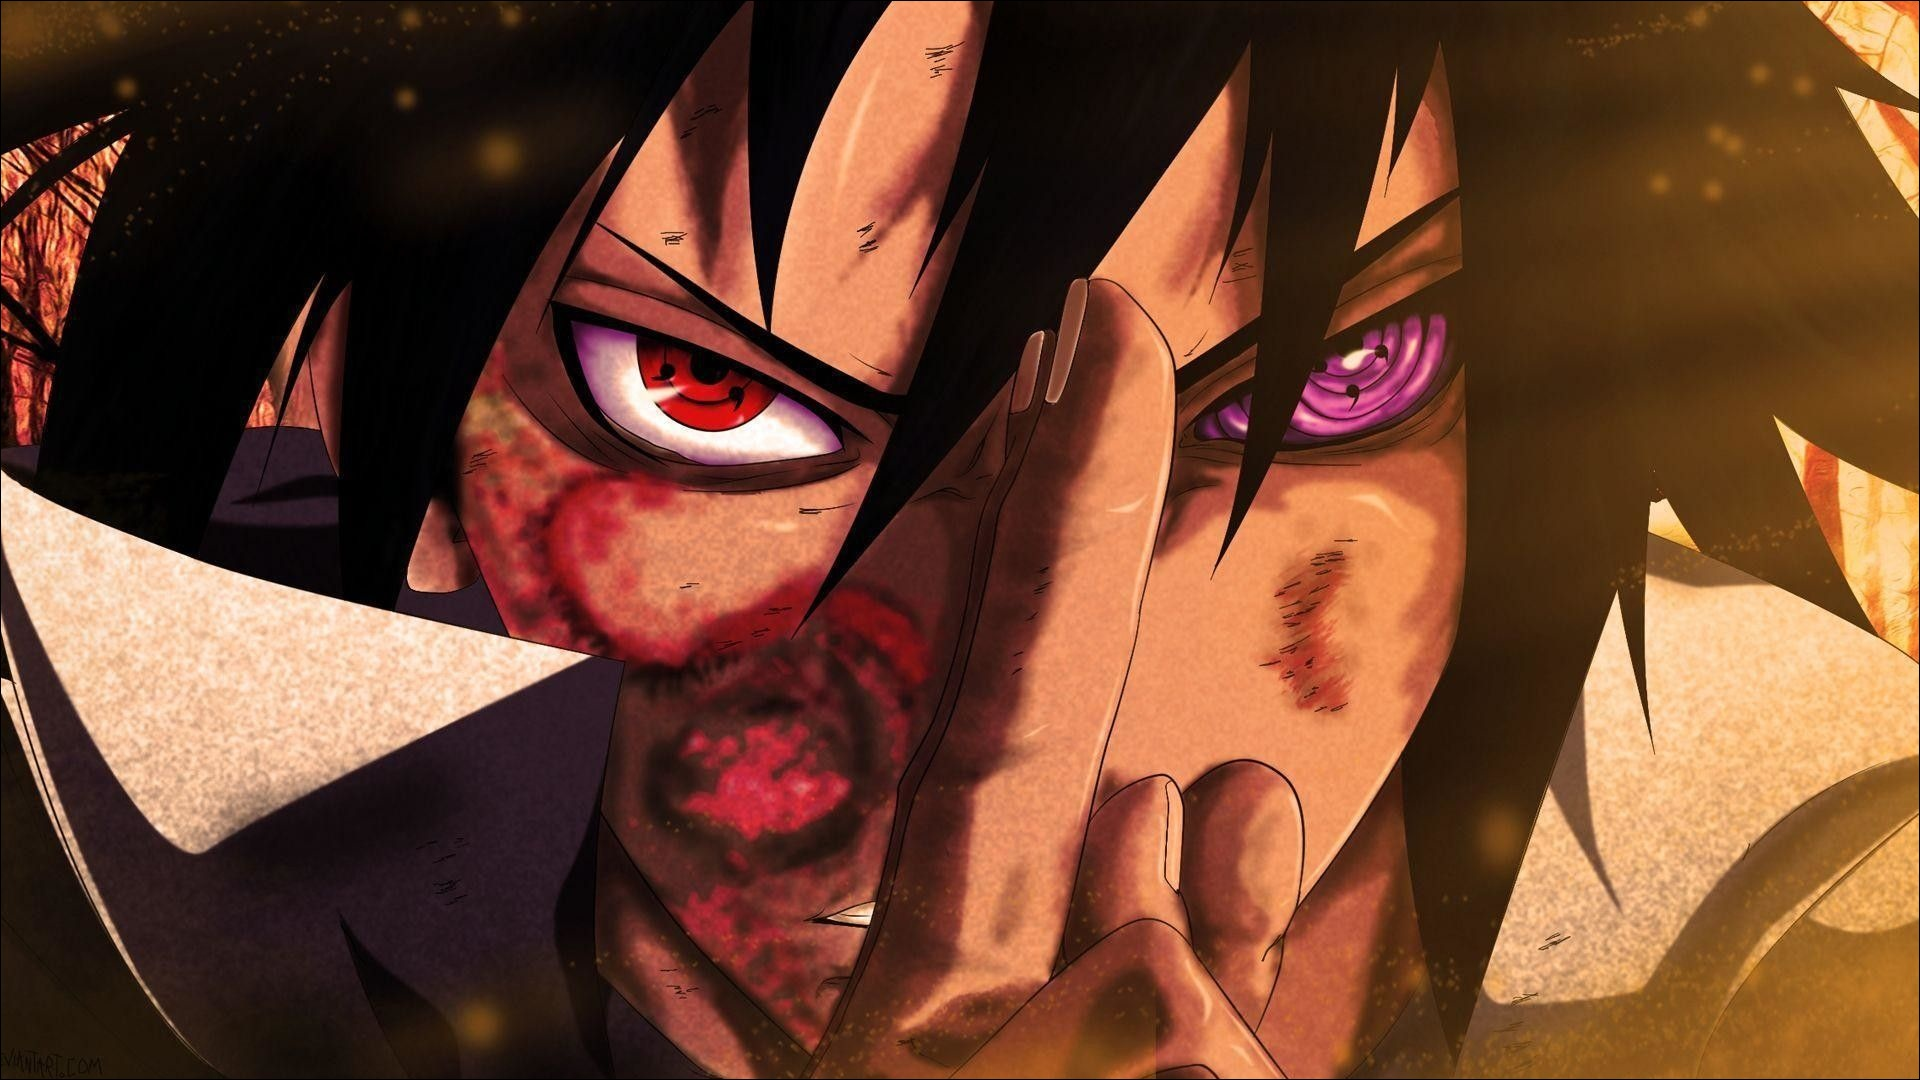 1280x1024 Sasuke Uchiha Naruto 1280x1024 Resolution HD 4k